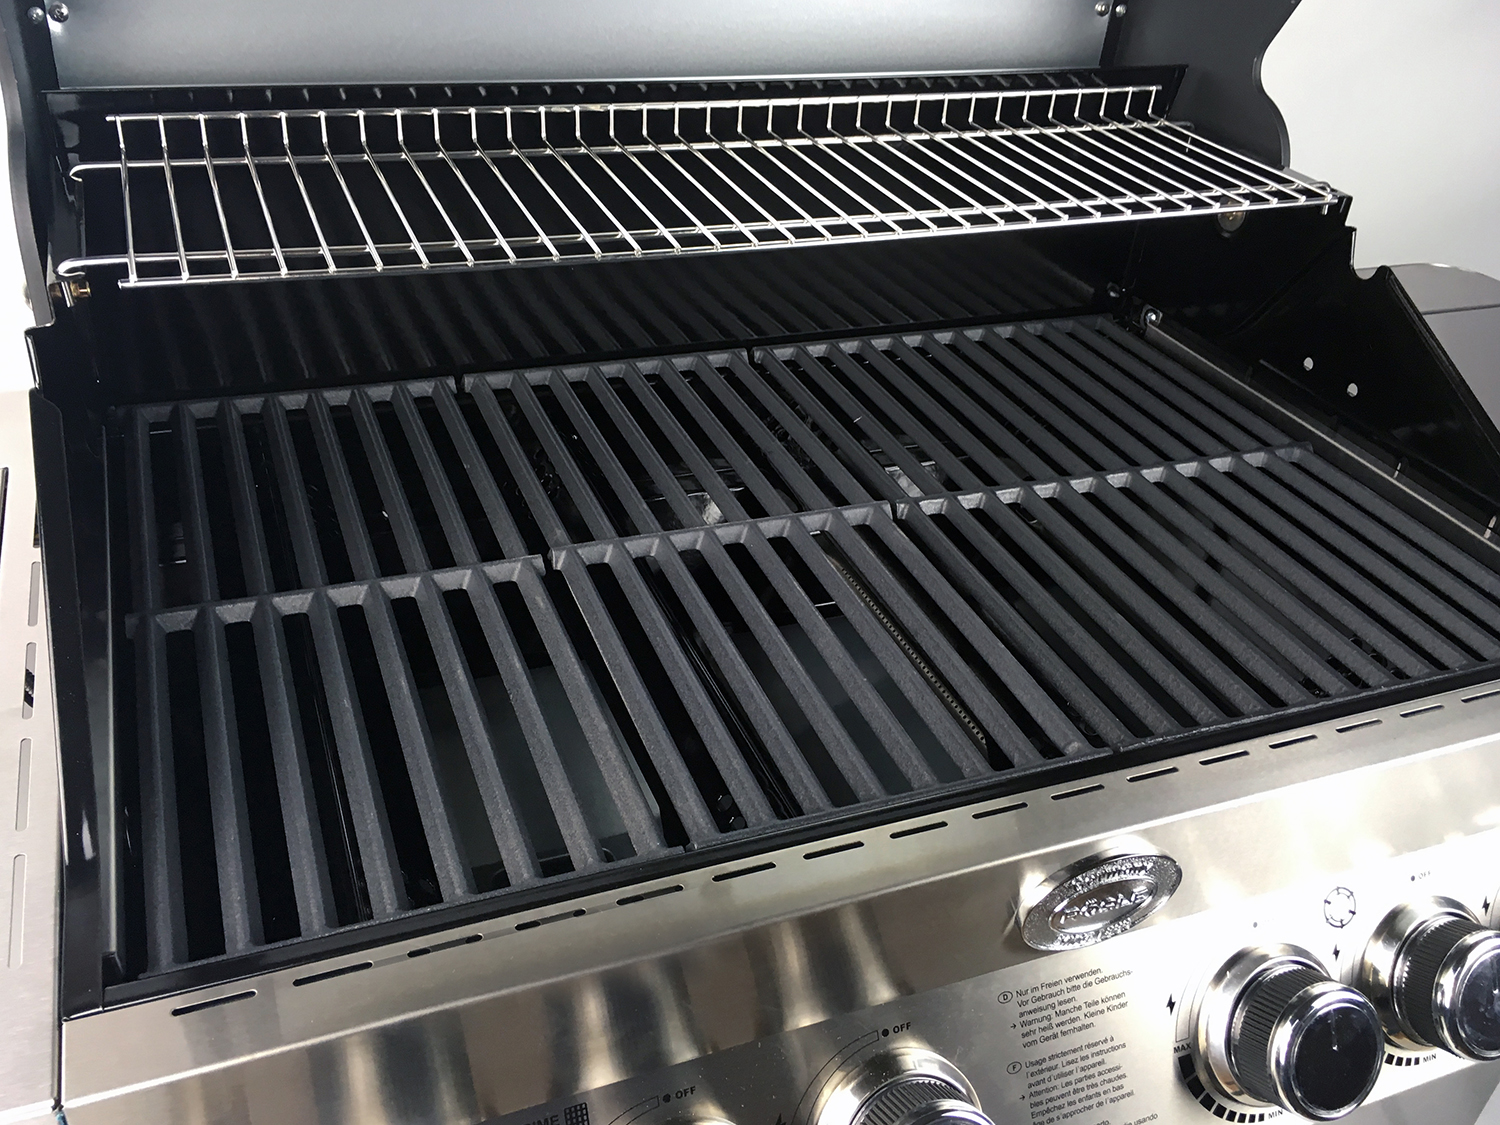 Rösle Gasgrill Anleitung : RÖsle kugelgrill aufbauanleitung rosle kettle grill assembly